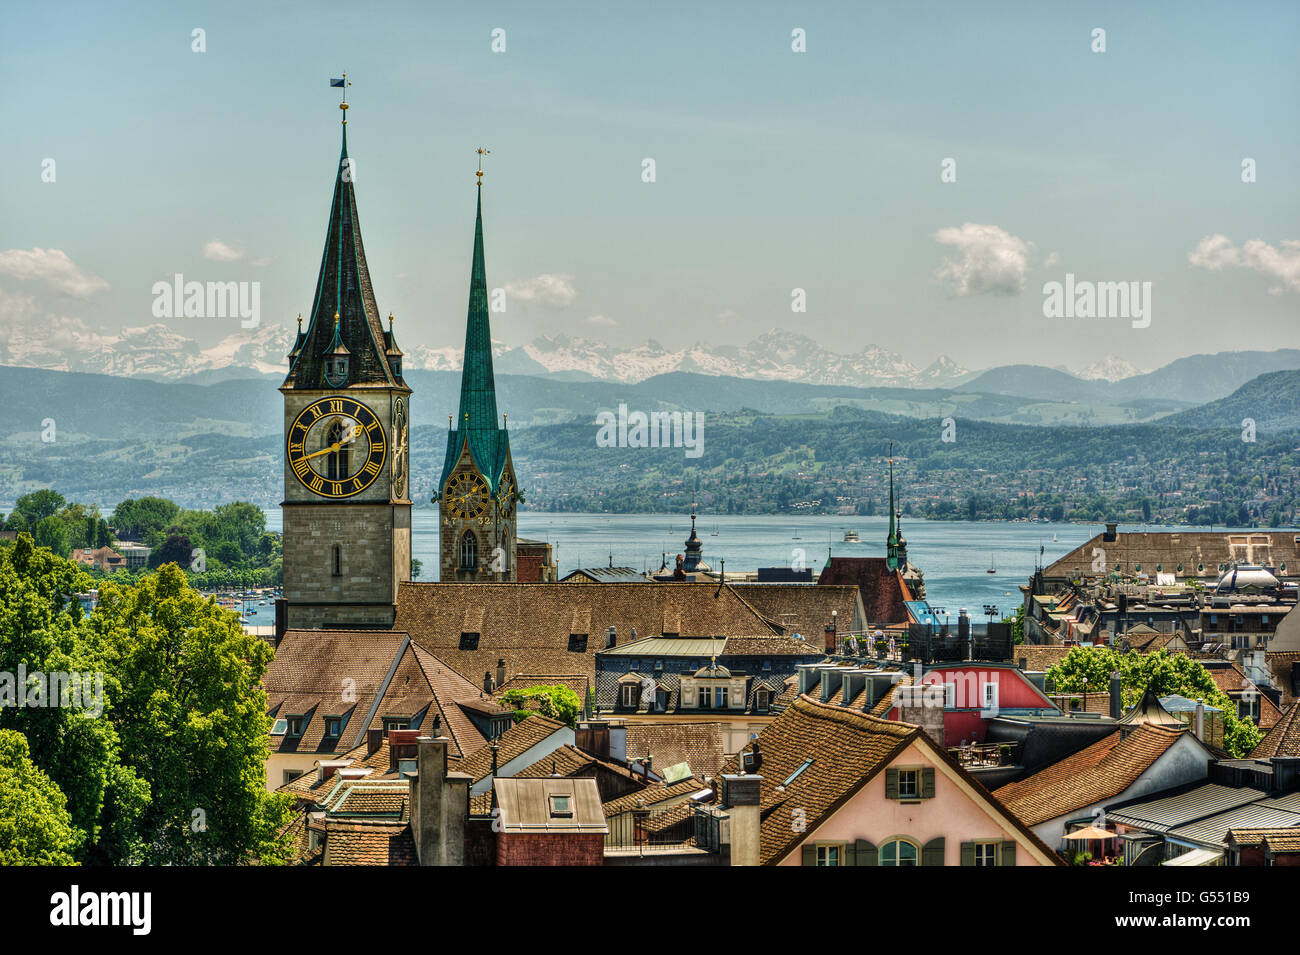 June 2016, urban capture of Zurich, focus on the Lake Zurich and the churches Frauenmünster and St. Peter, - Stock Image